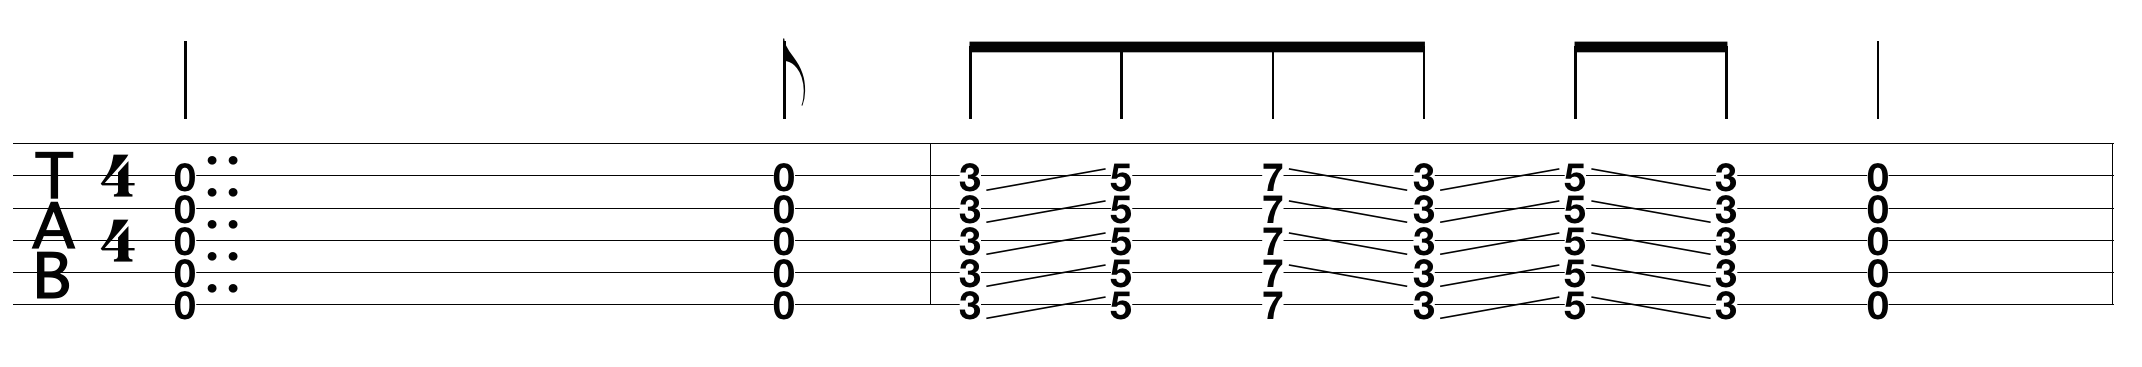 blues-guitar-strings_1.png